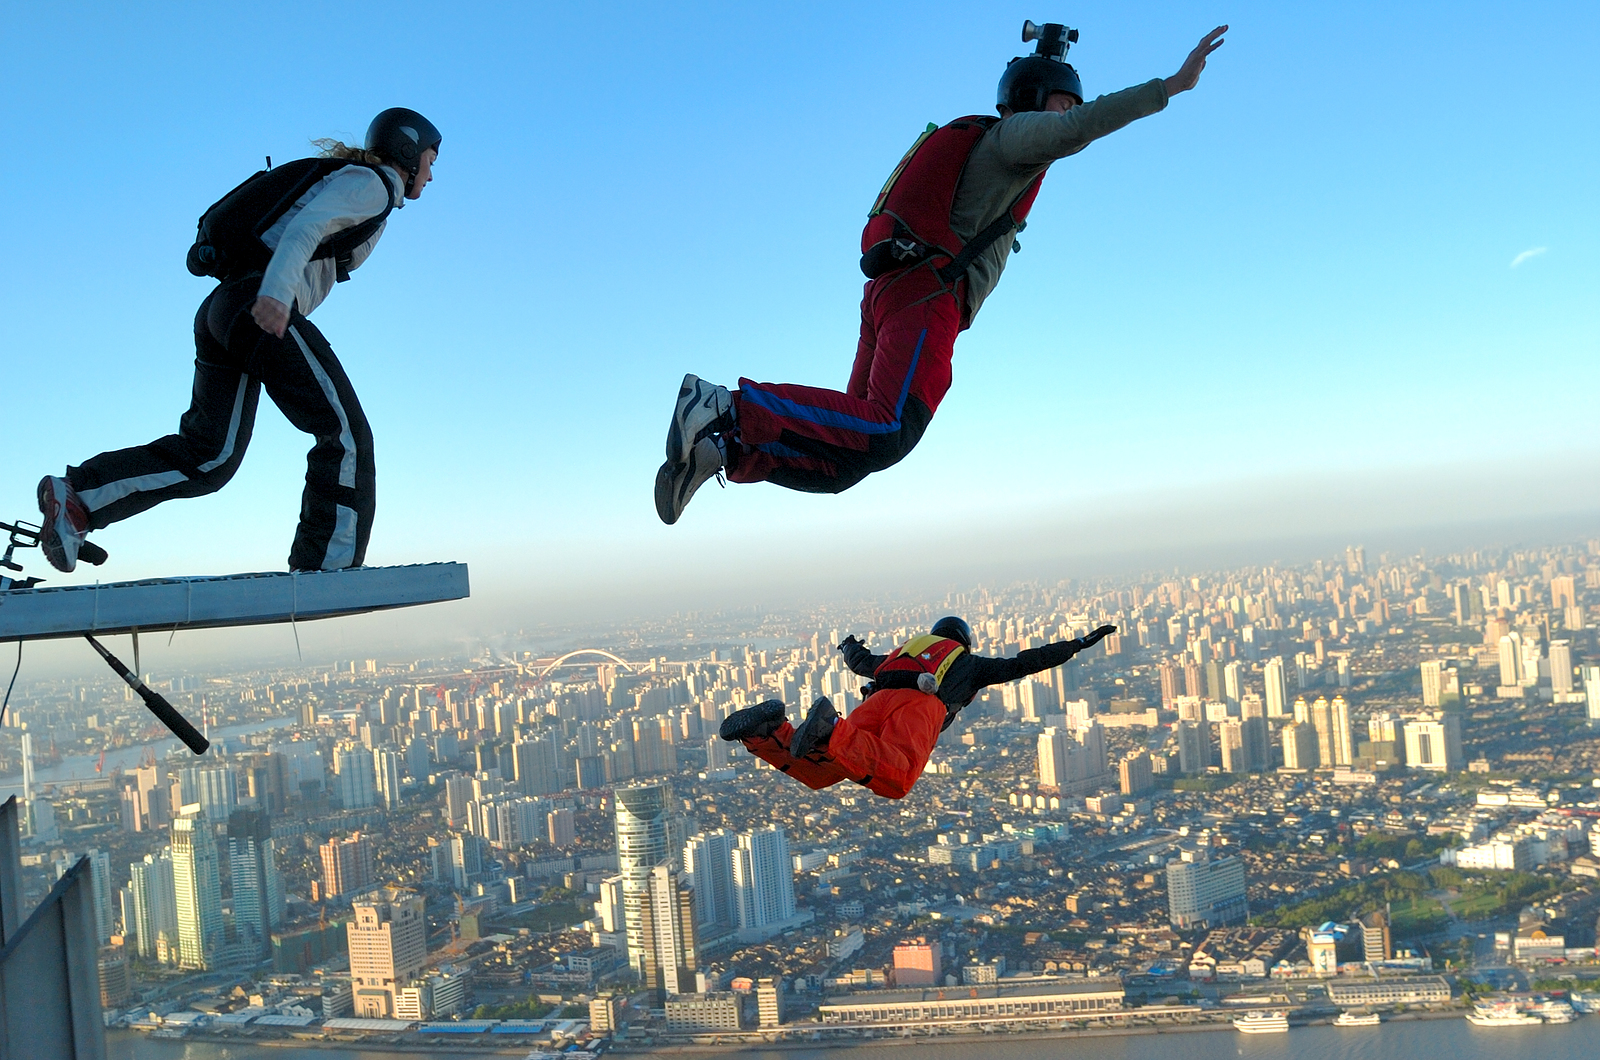 Base Jumping Over City Free Wallpaper for MAC YOLO!